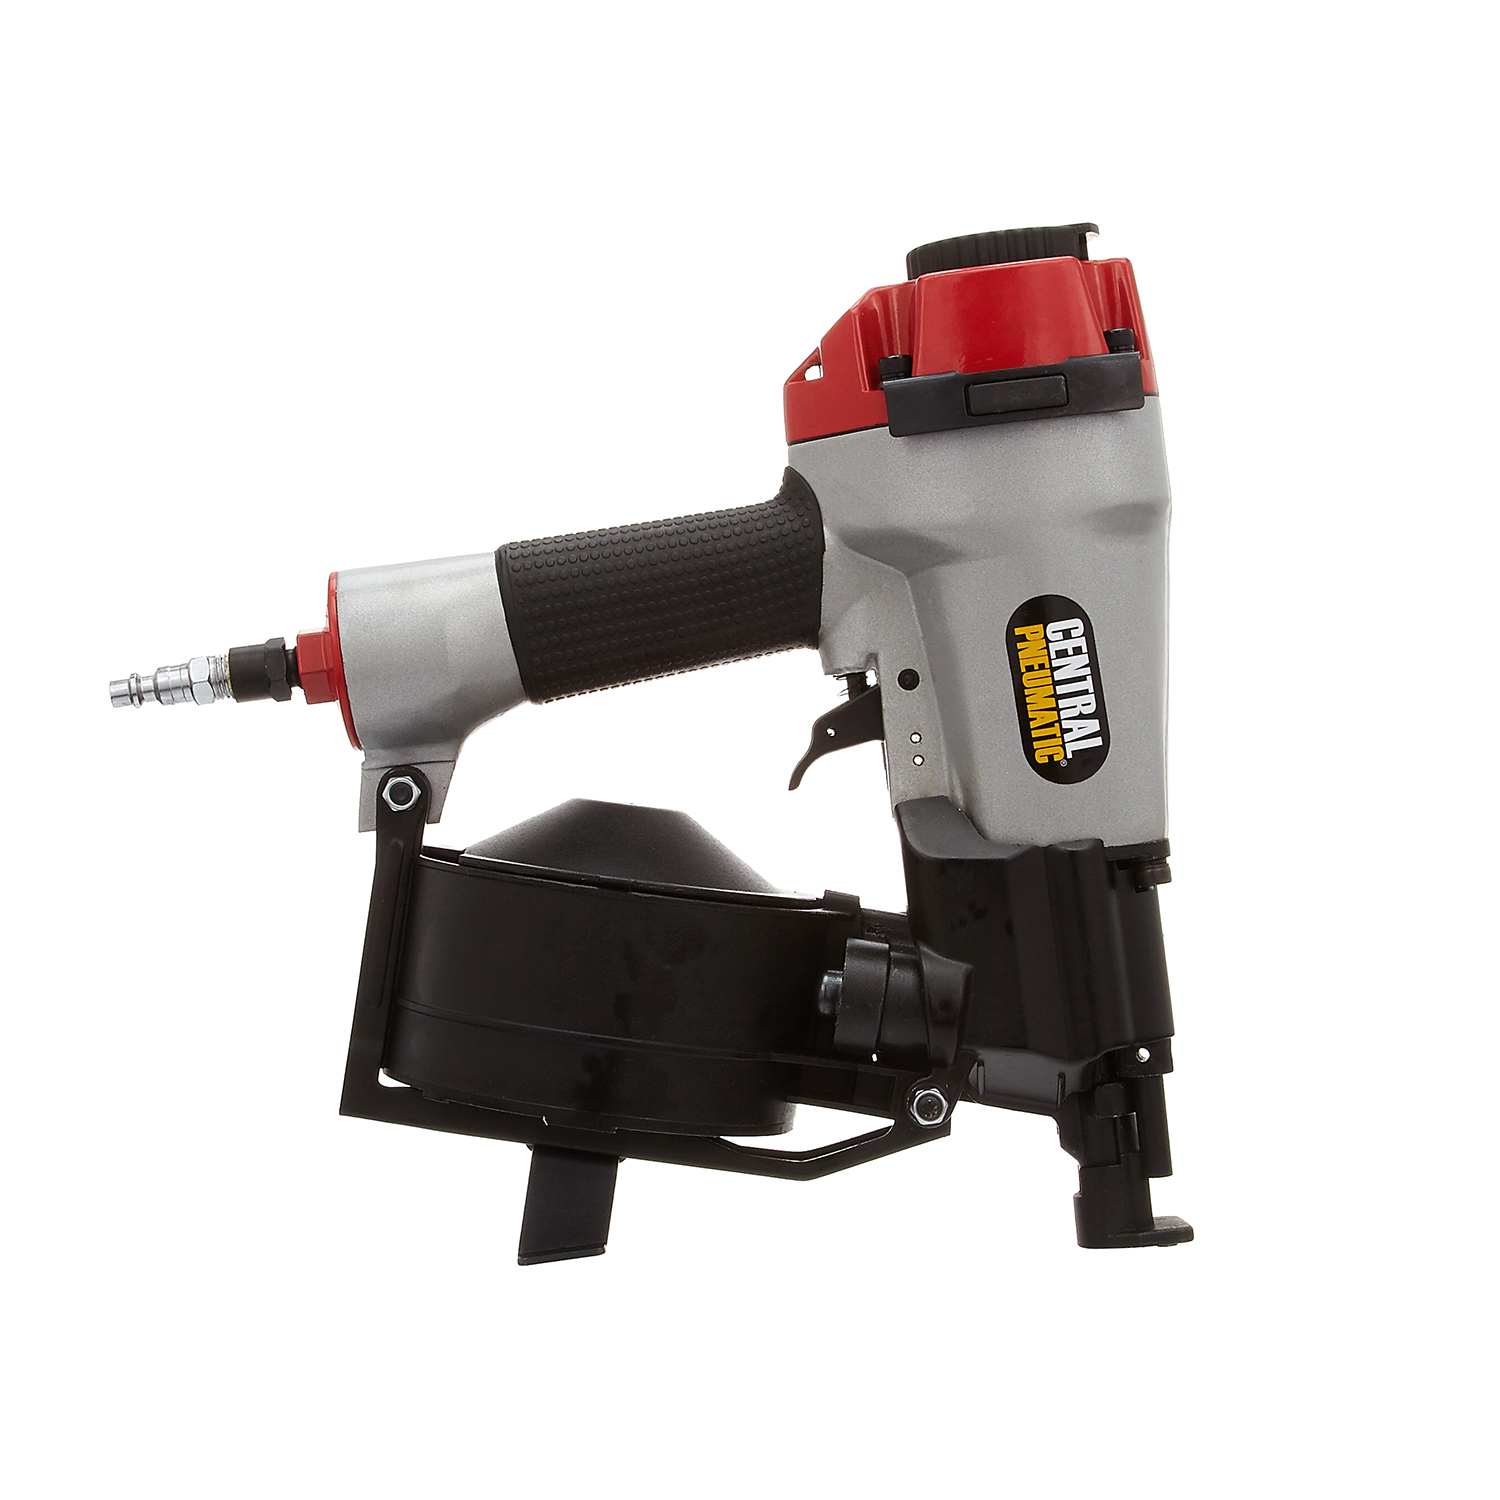 Harbor Freight roof nailer